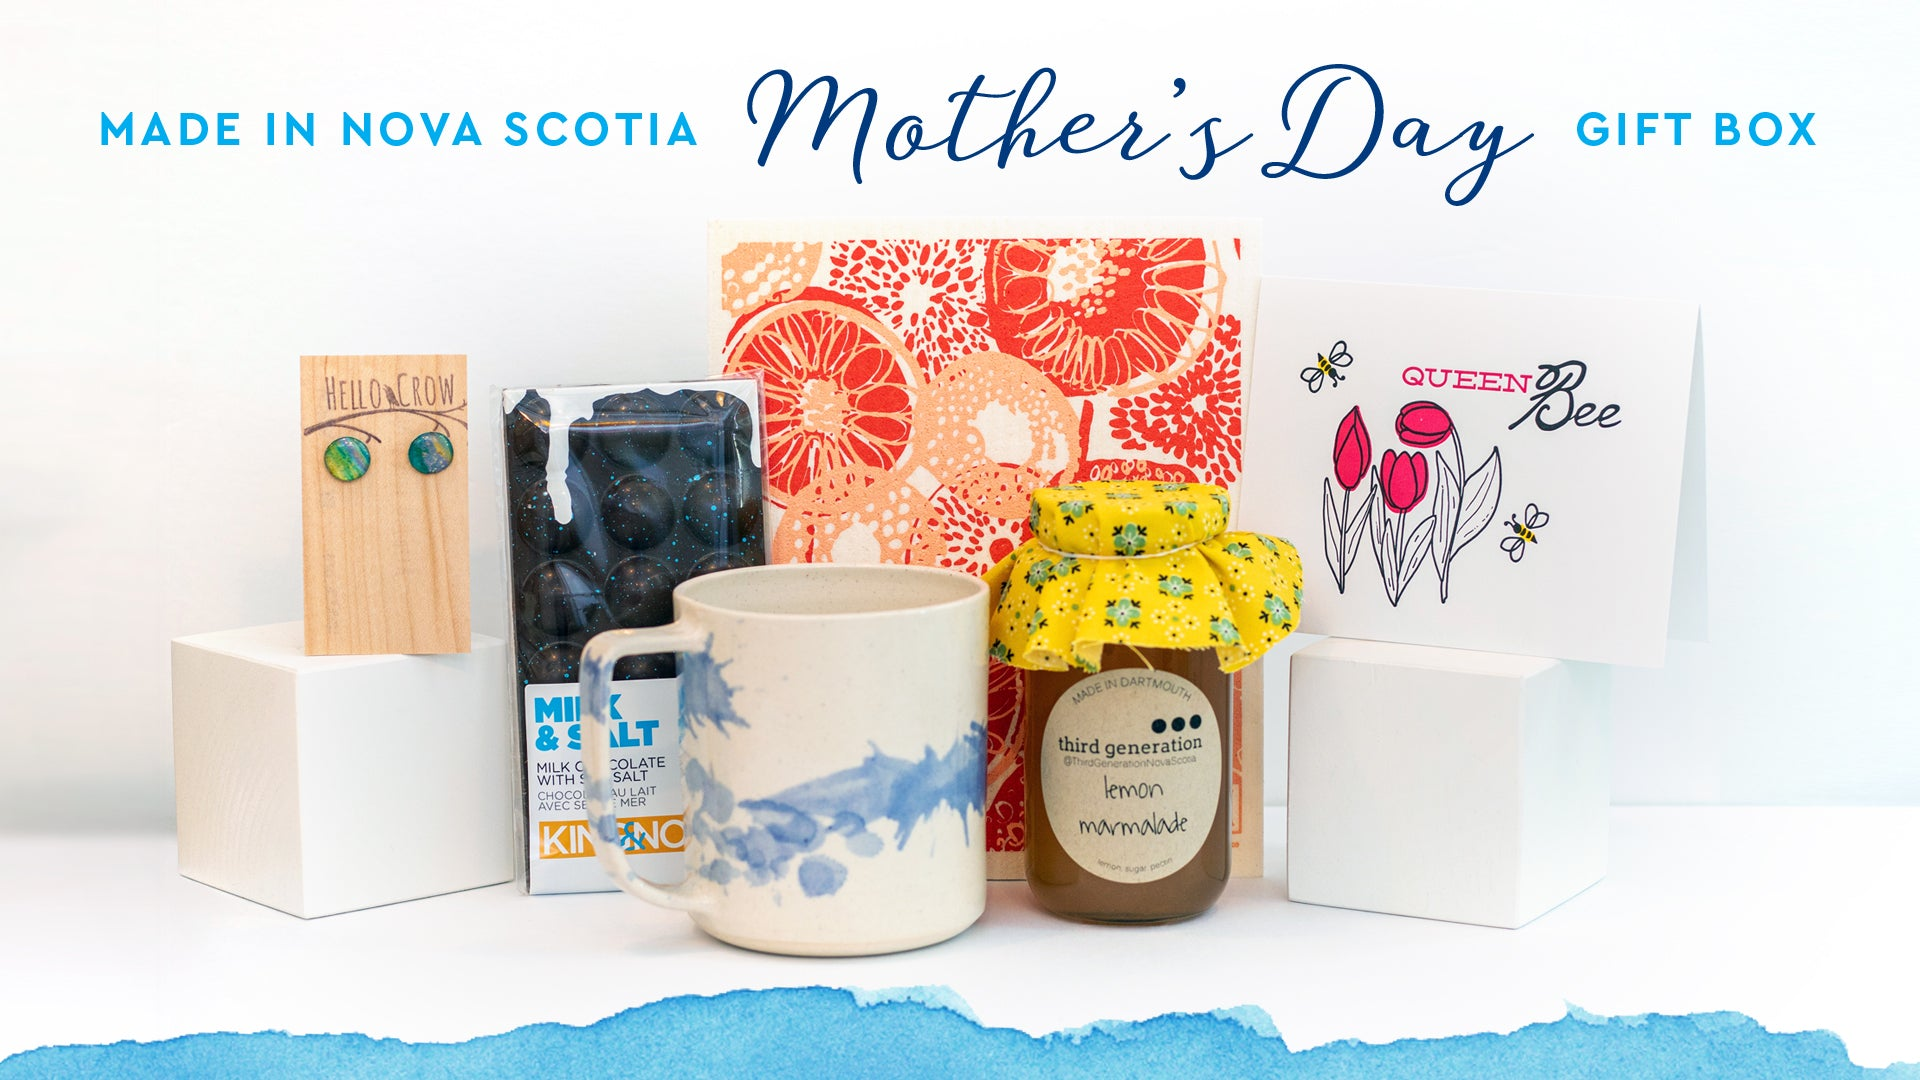 Made in Nova Scotia Mother's Day Gift Box